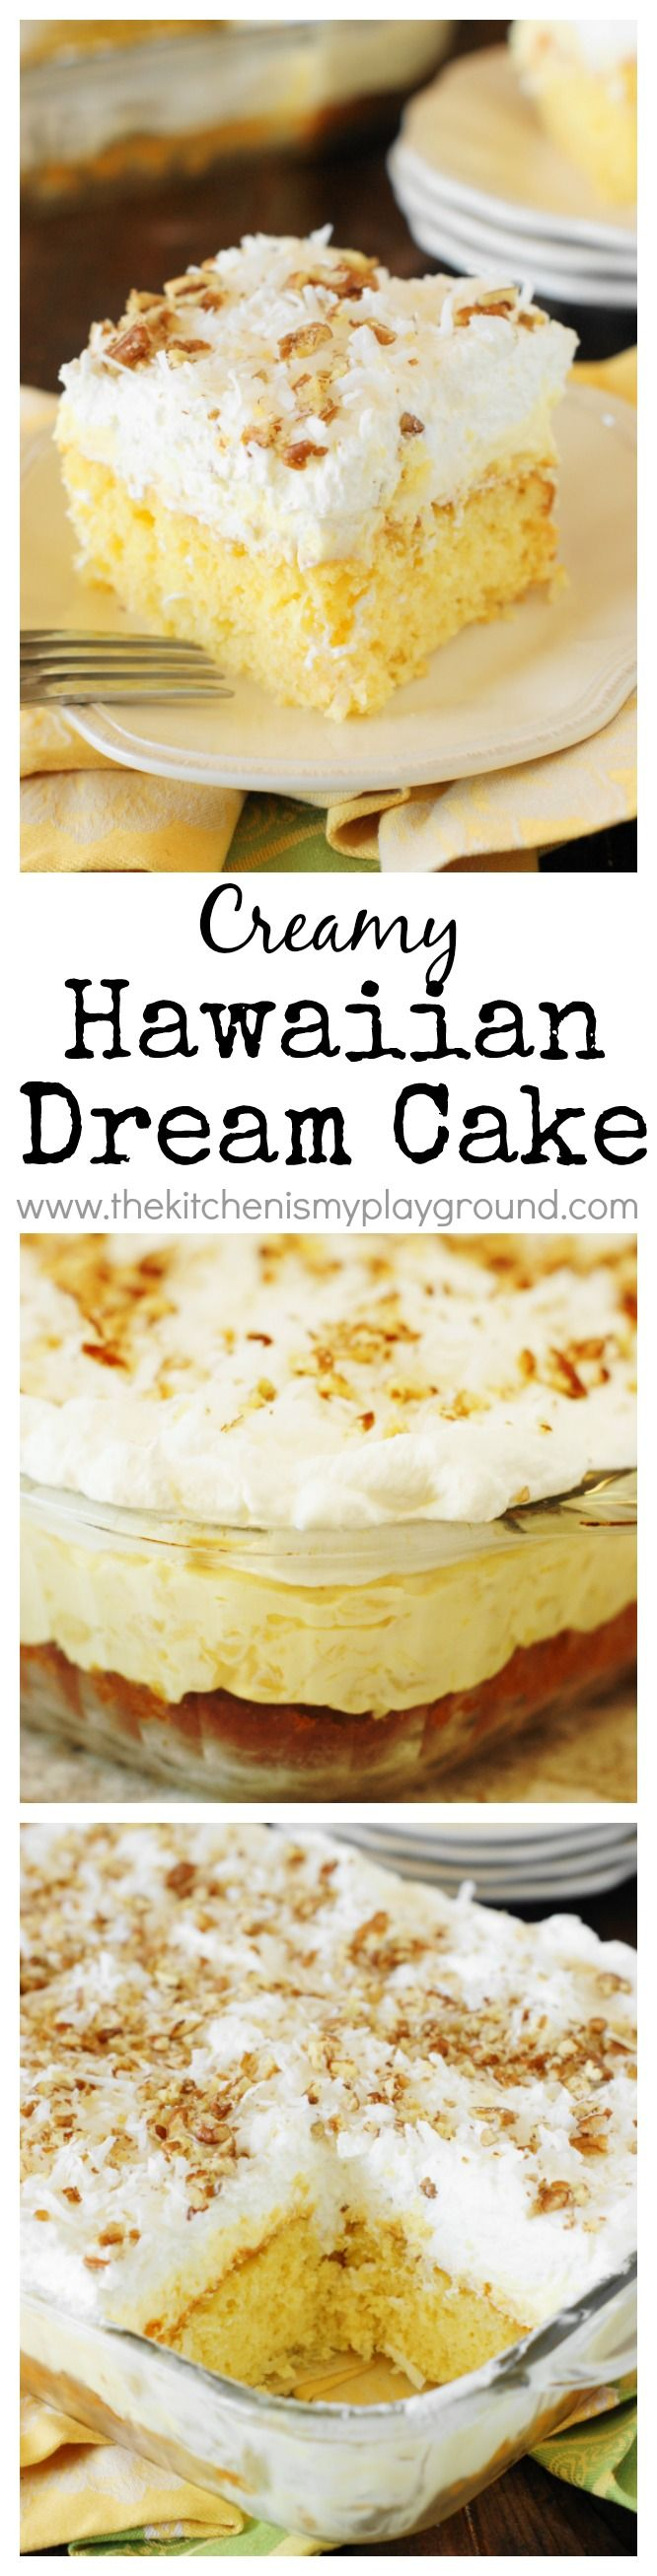 Hawaiian Dream Cake ~ a layered delight with pineapple-and-coconut laced yellow cake base, layer of creamy pineapple pudding, and freshly whipped cream and coconut topping.  Cool, creamy, & comforting!   #cake #cakerecipes www.thekitchenismyplayground.com